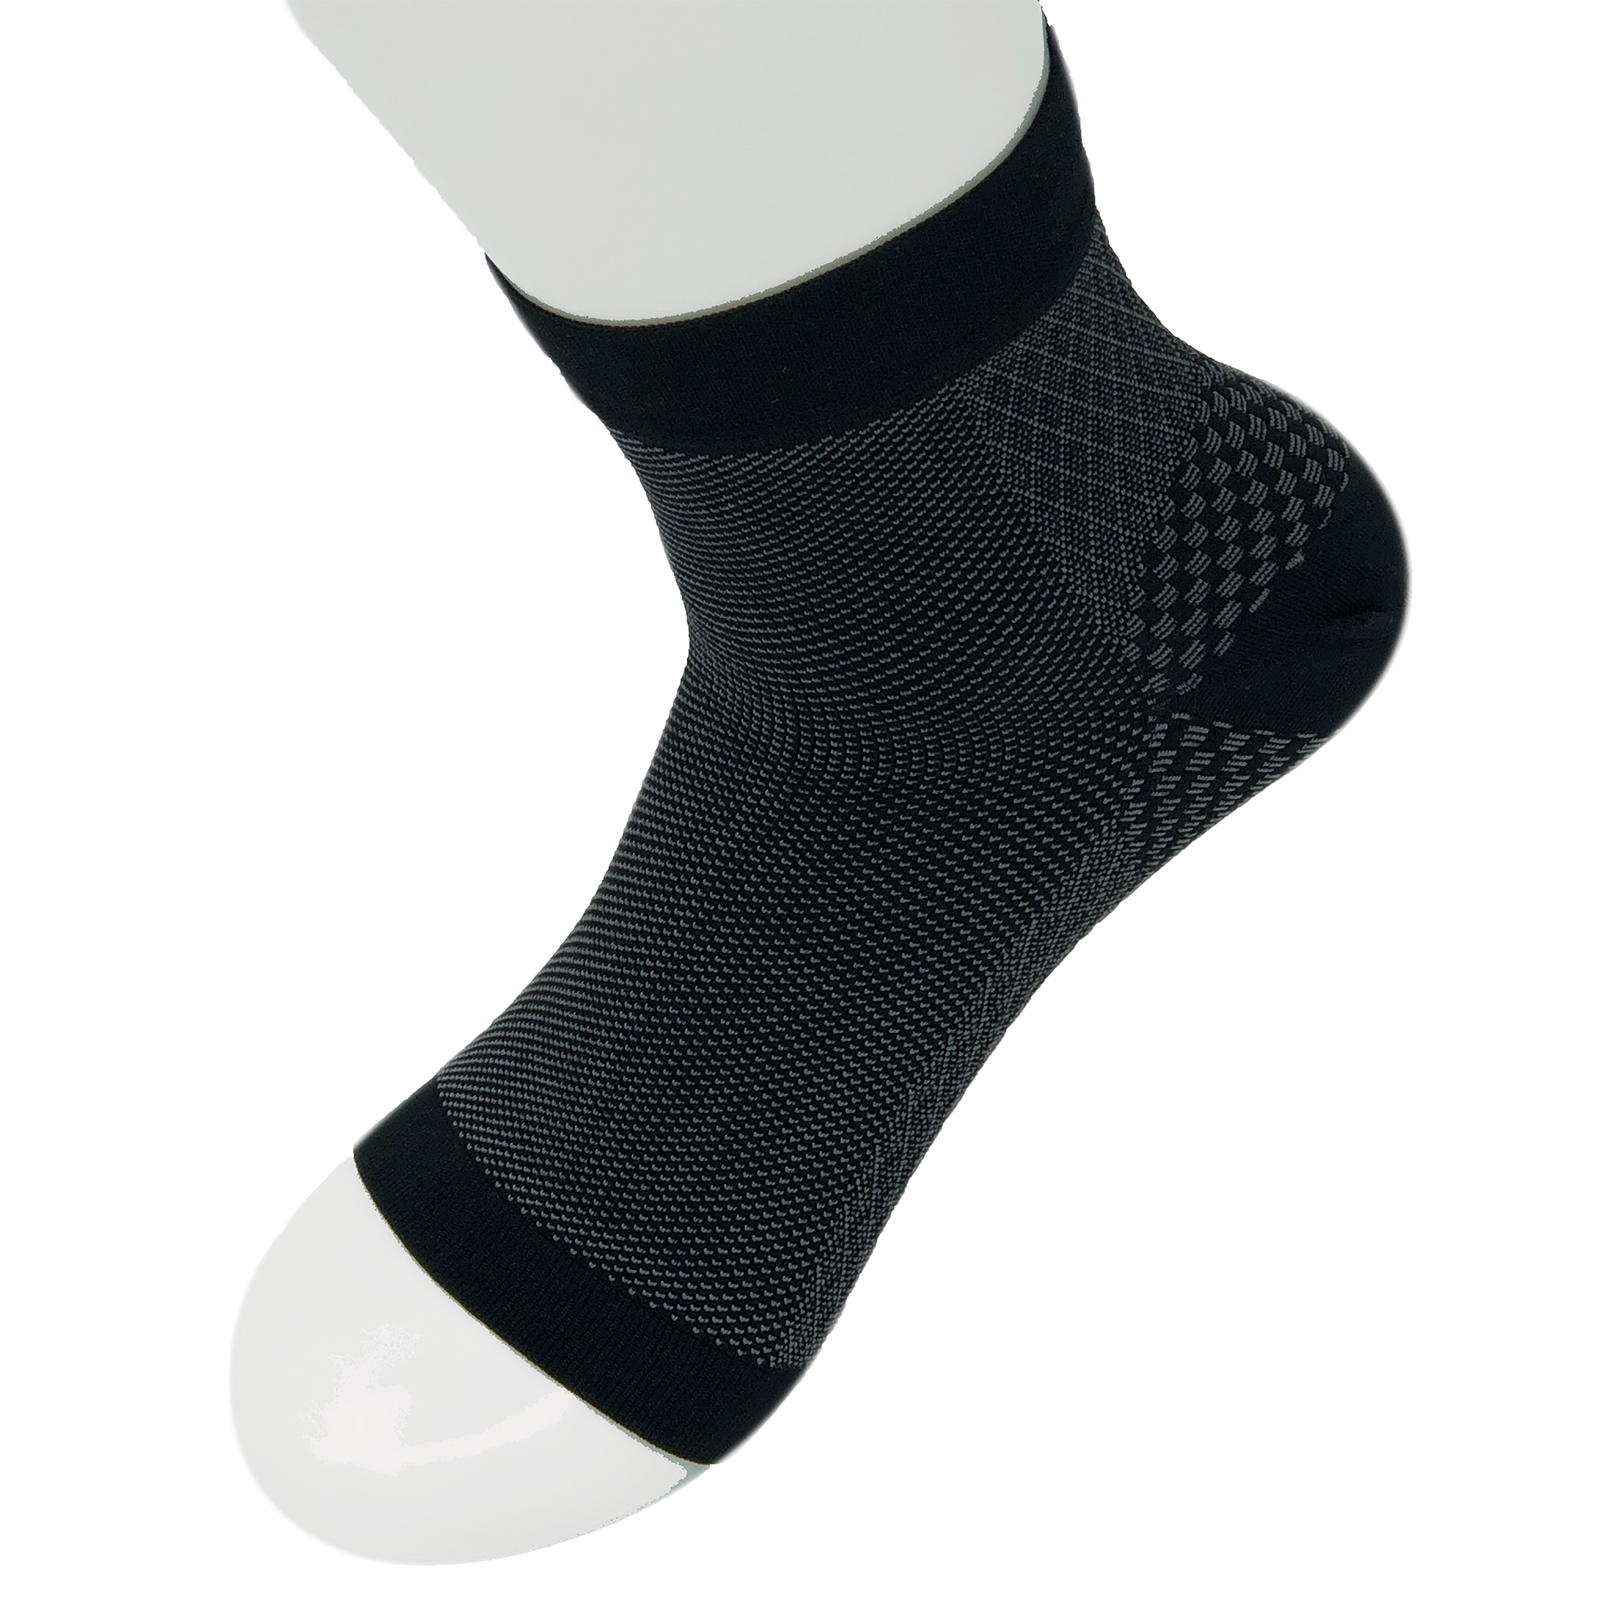 Heel Pain 4 Colors S,M,L,XL Compression Foot Sleeves for Foot Pain Relief Treatment for Everyday Use with Arch Support Kinship Comfort Brands Plantar Fasciitis Socks for Men /& Women